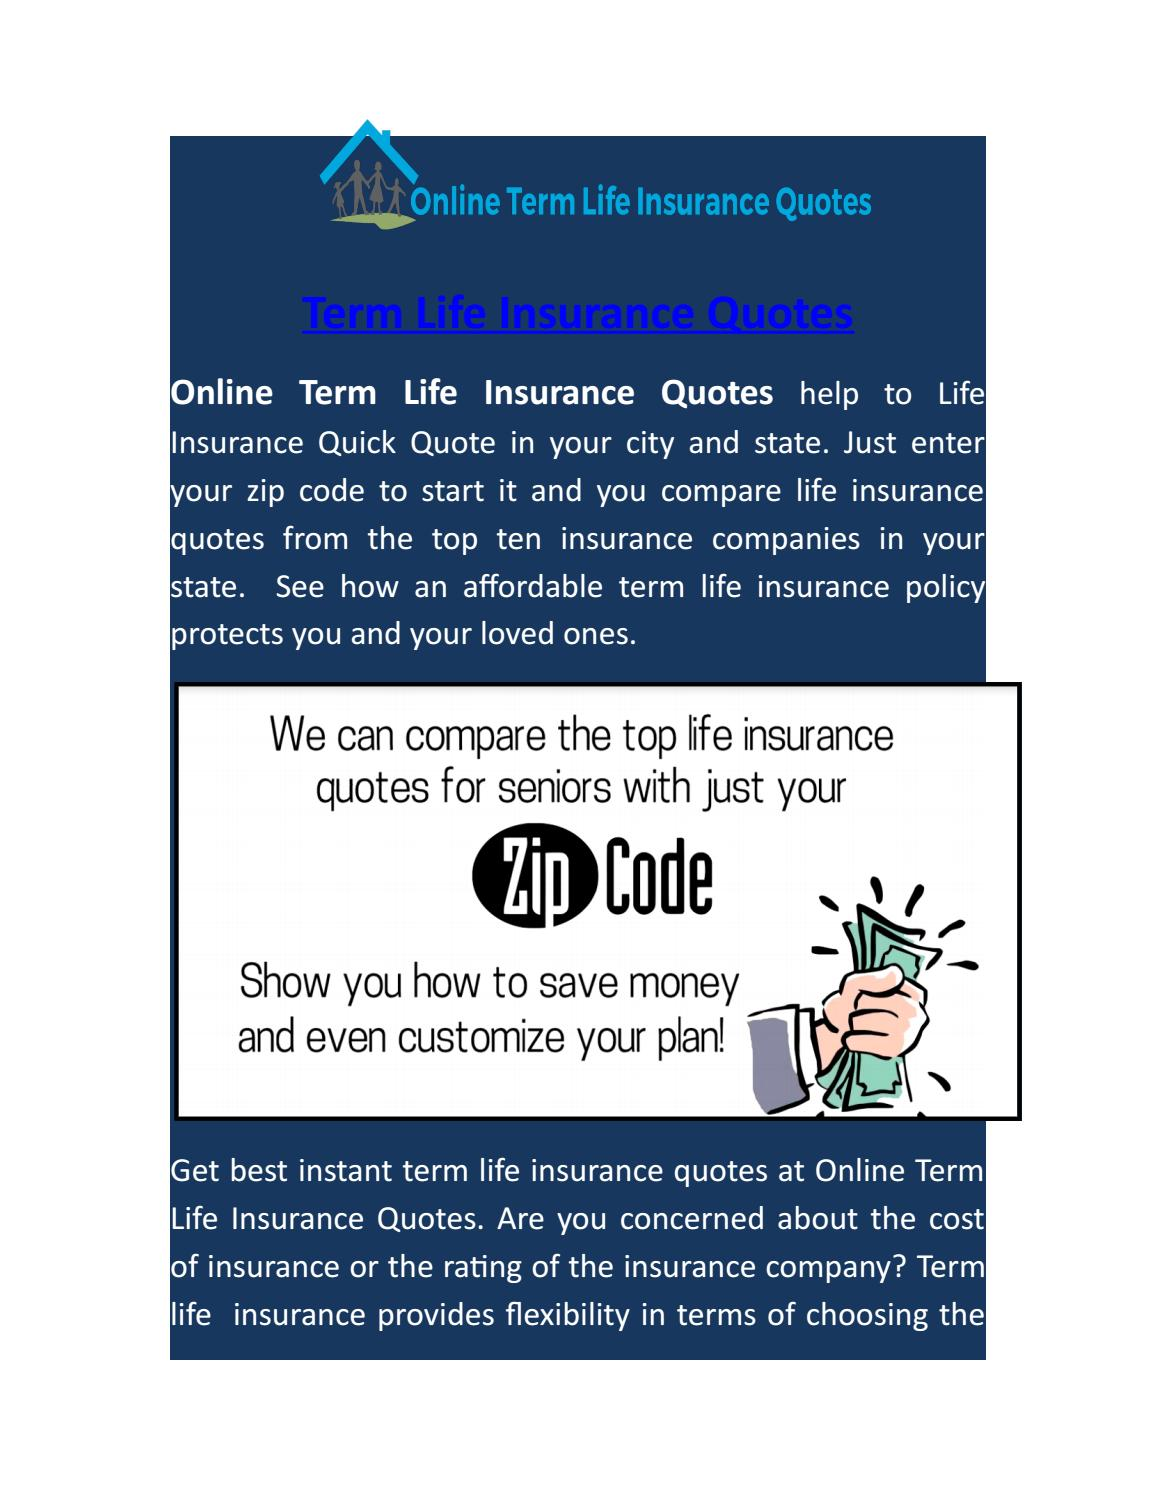 Top Ten Life Insurance Companies >> Term Life Insurance Quick Quote By Onlinelifeinsurancequotes